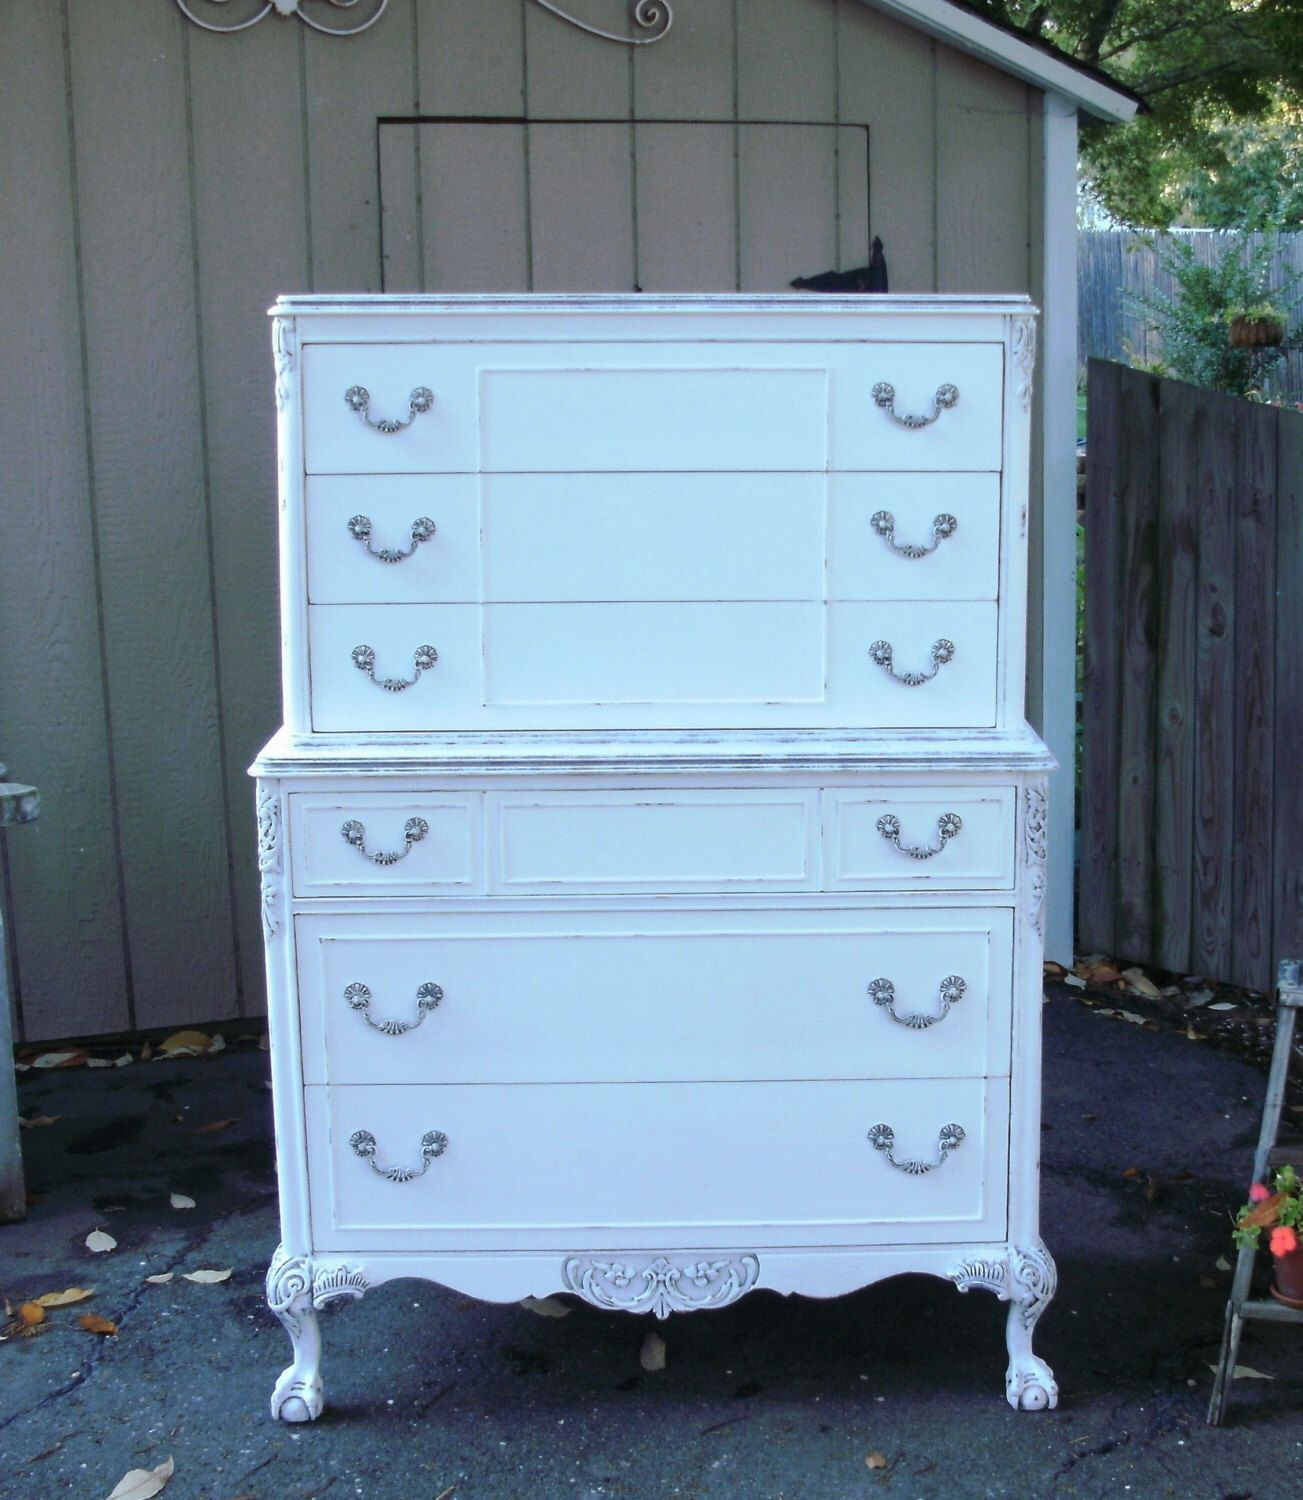 Vintage White Highboy Dresser Shabby Chic Painted Furniture By Seasidefurniture On Etsy